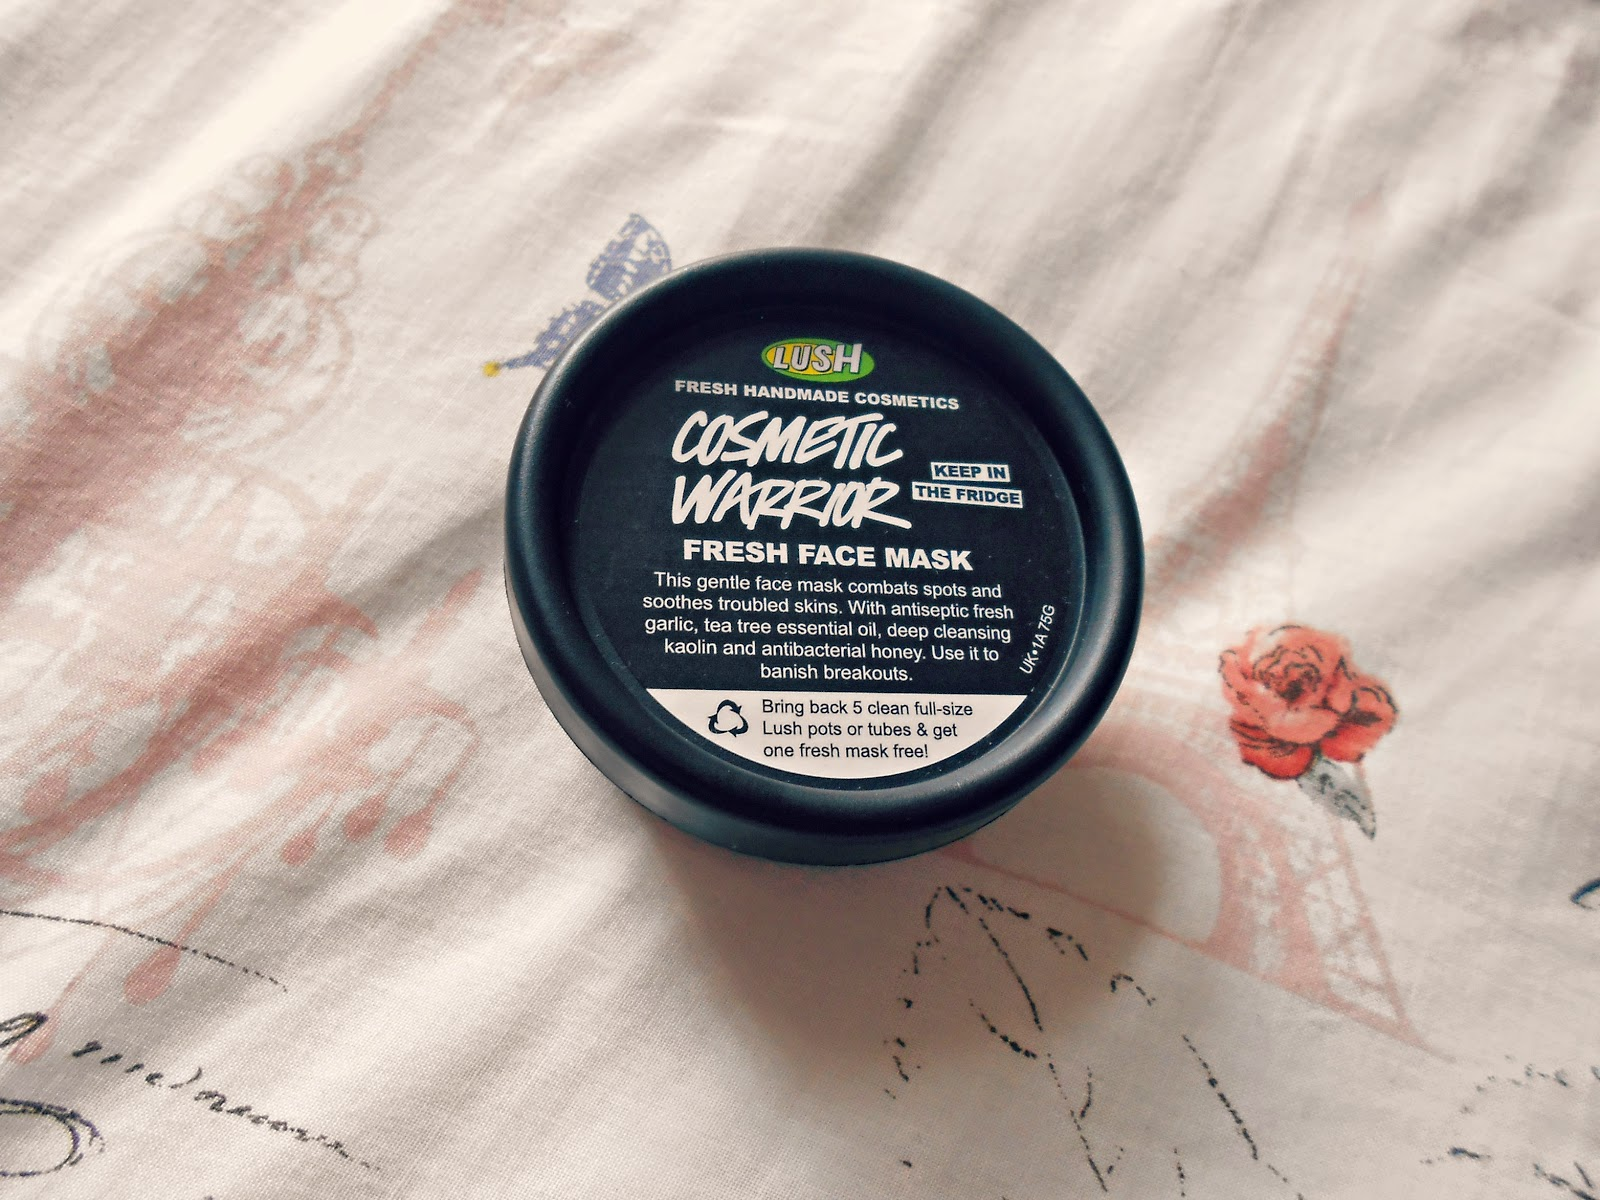 LUSH Cosmetic Warrior Face Mask Review